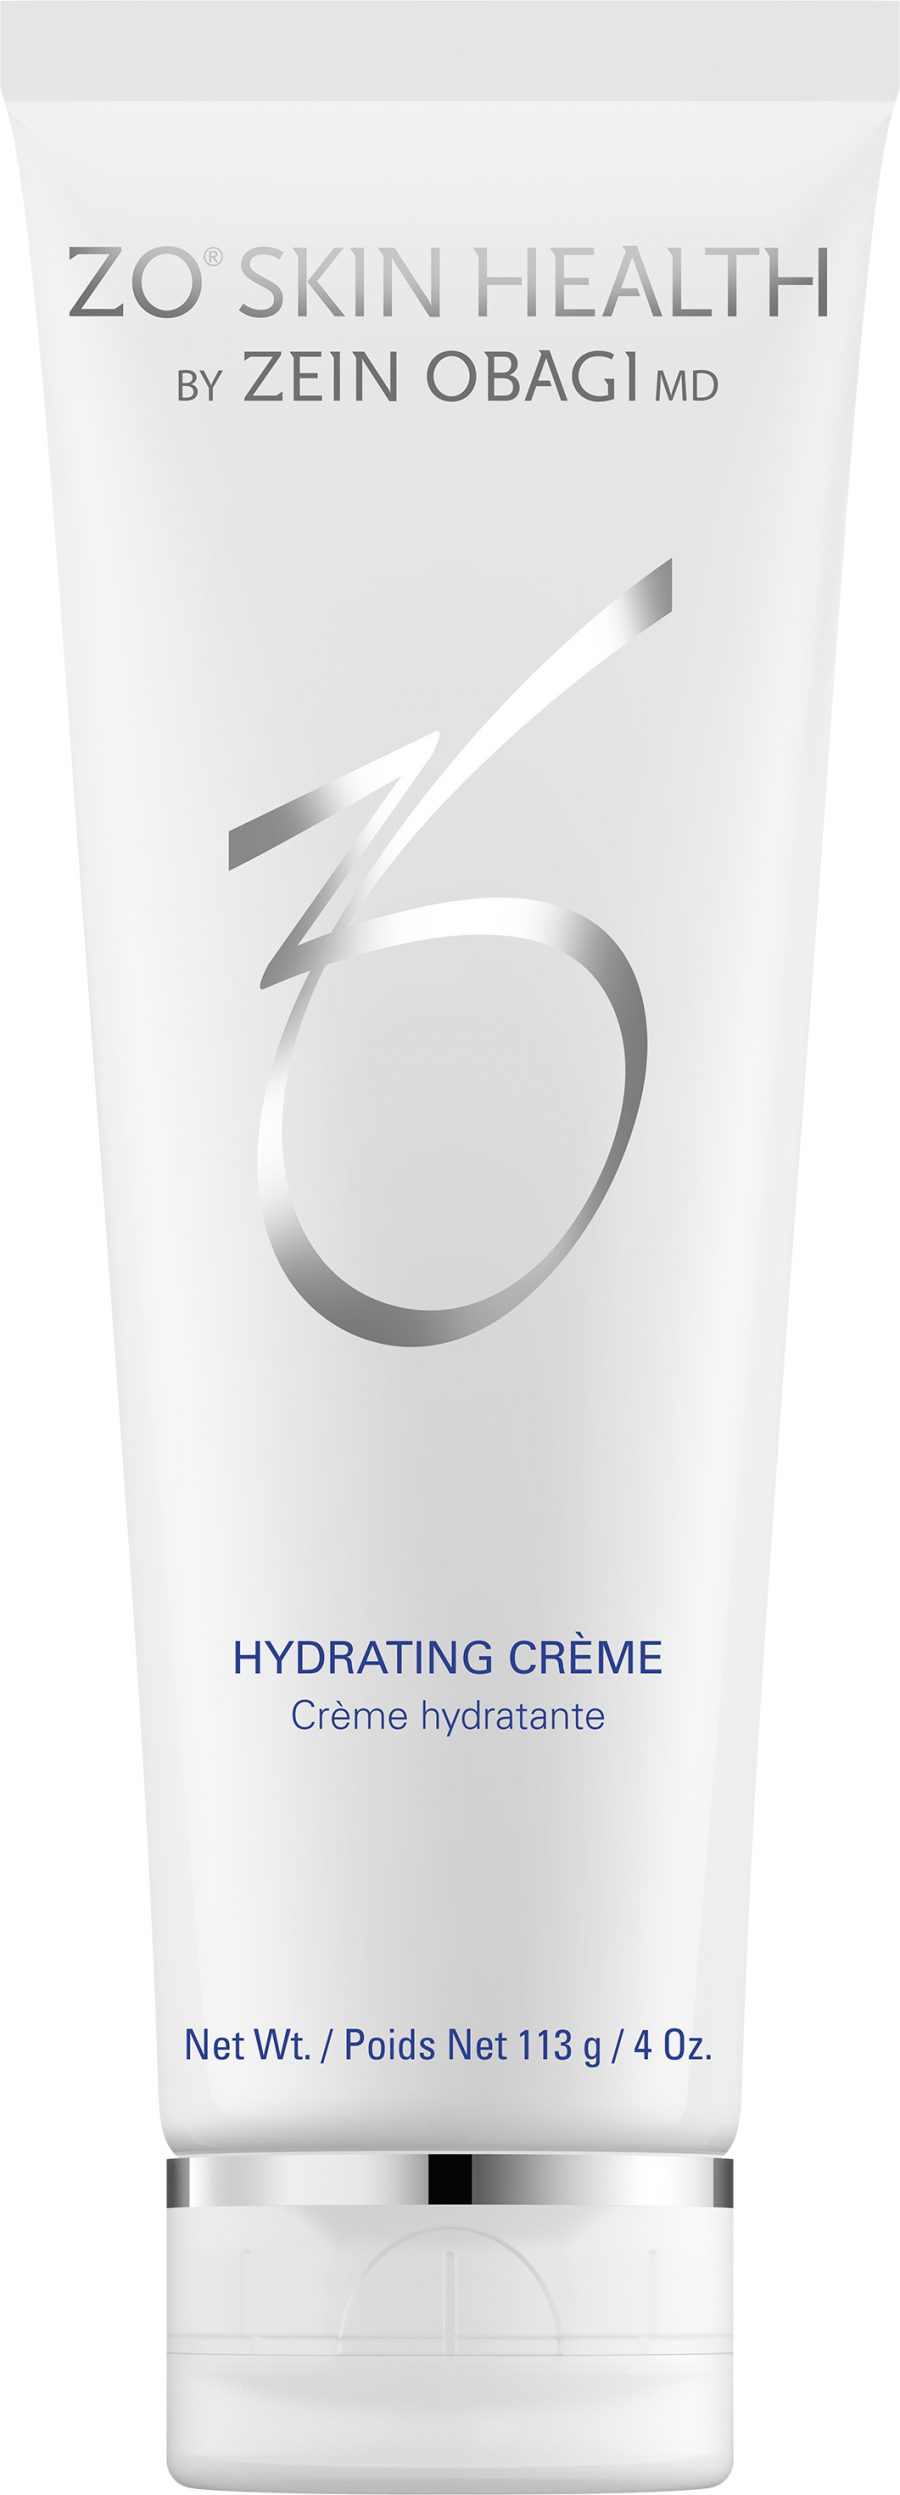 Image of Hydrating Crème packaging